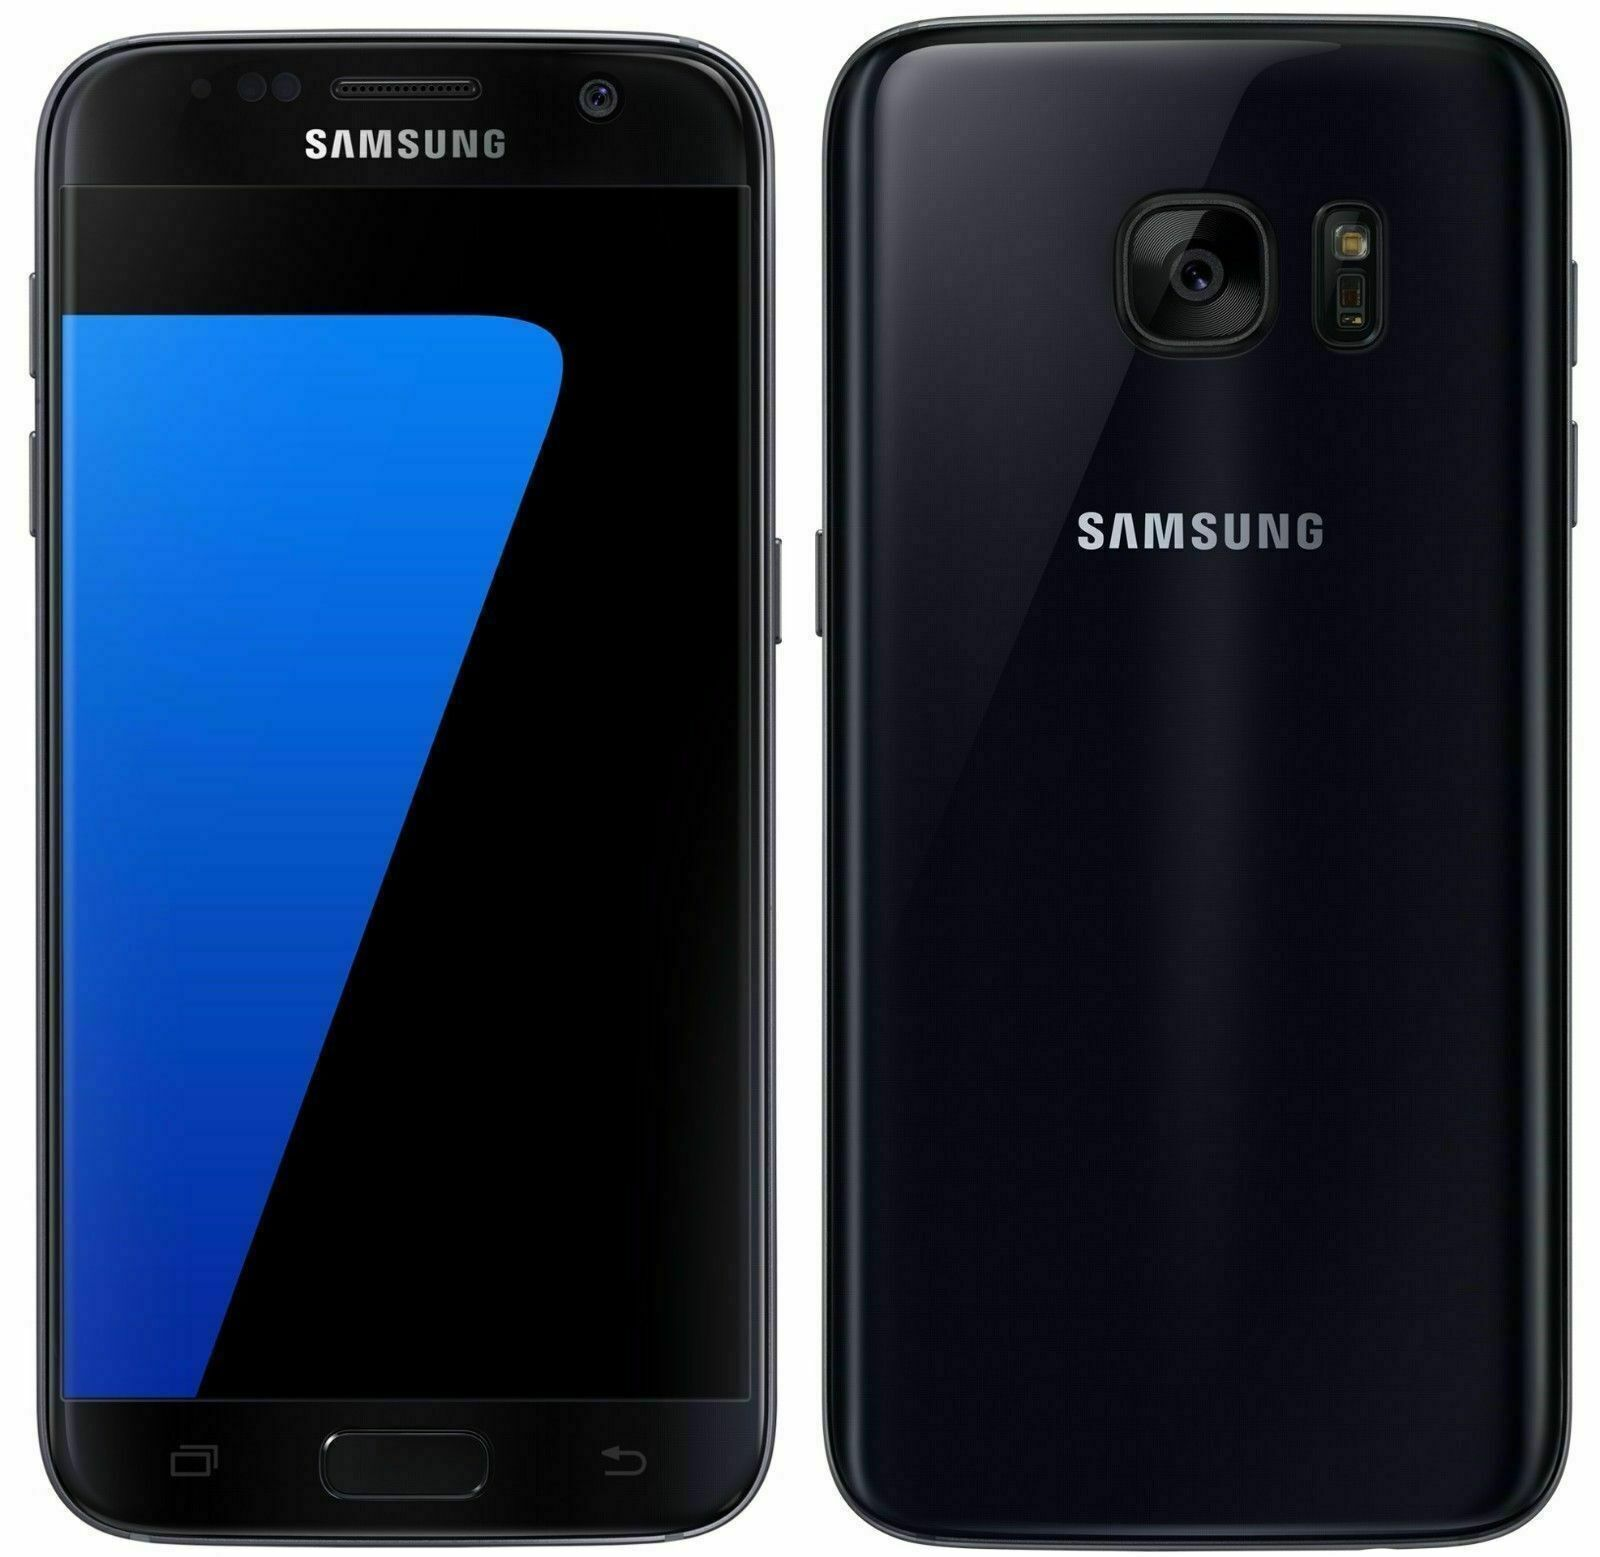 Android Phone - Samsung Galaxy S7 SM-G930 - 32GB - Black (Unlocked)